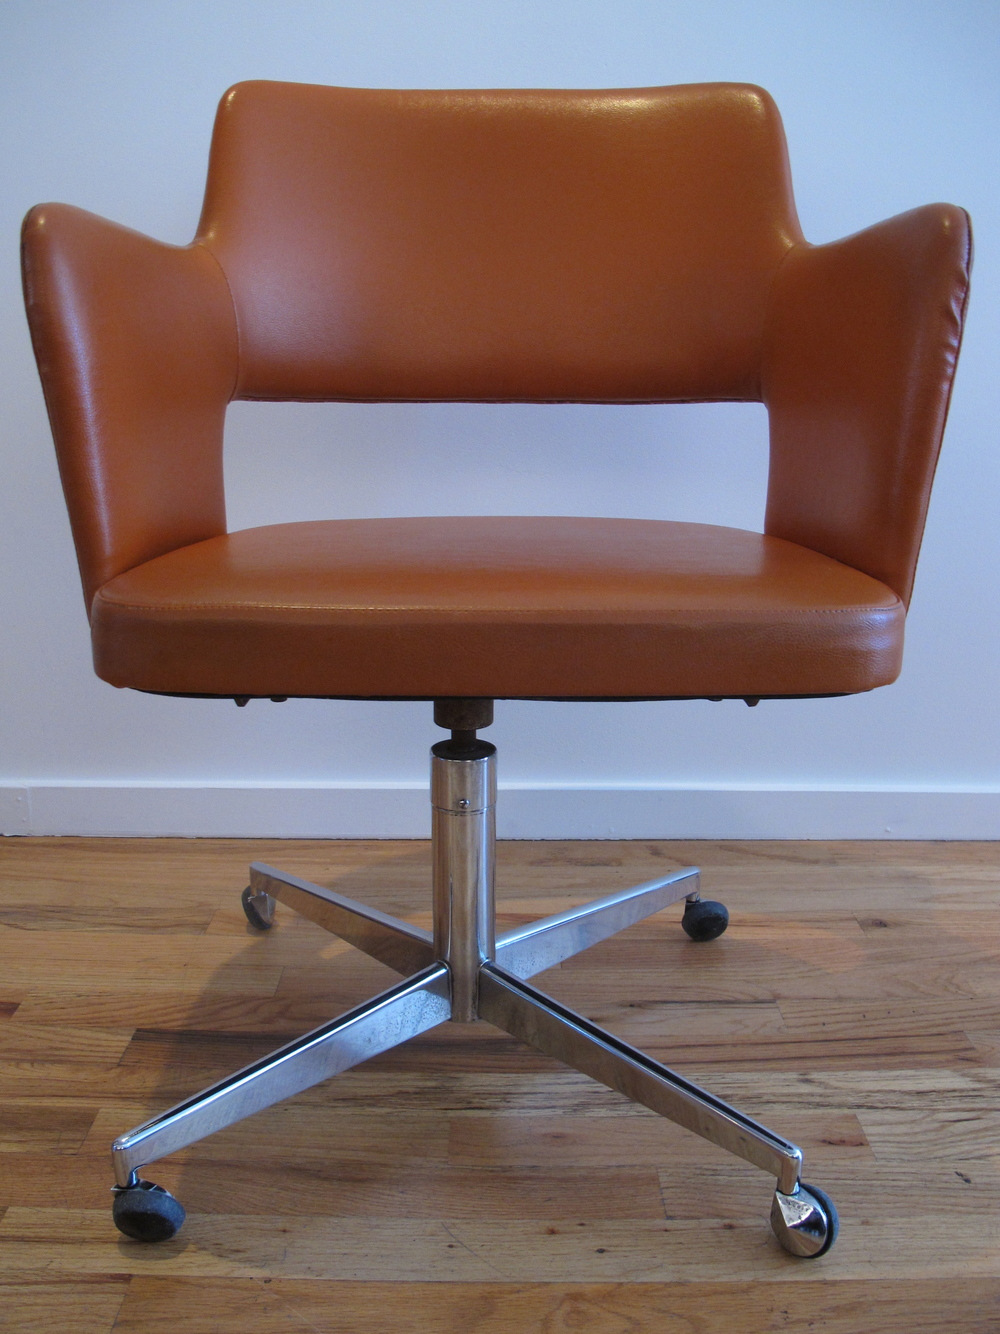 ASKO MIDE CENTURY SWIVEL CHAIR IMPORTED BY STENDIG